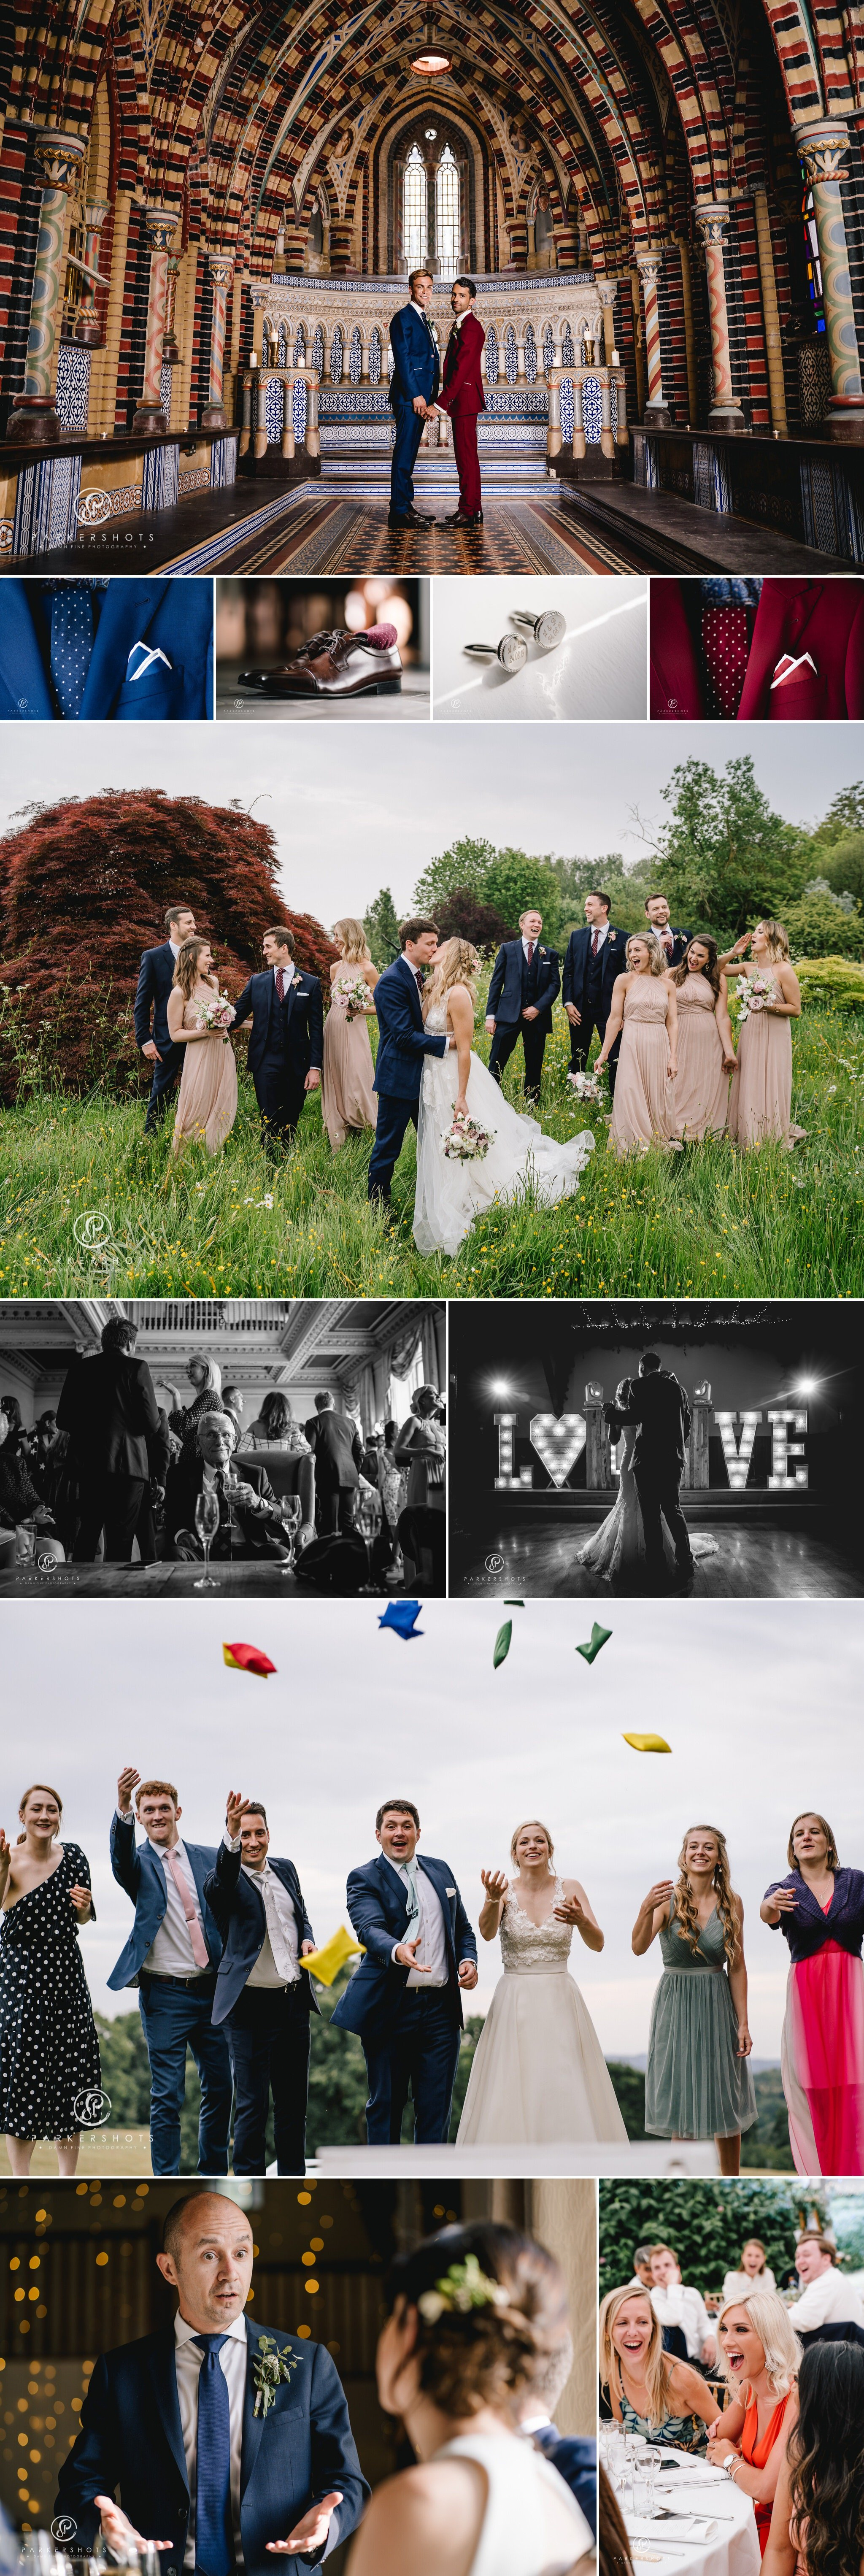 Best of Documentary Wedding Photography 2019